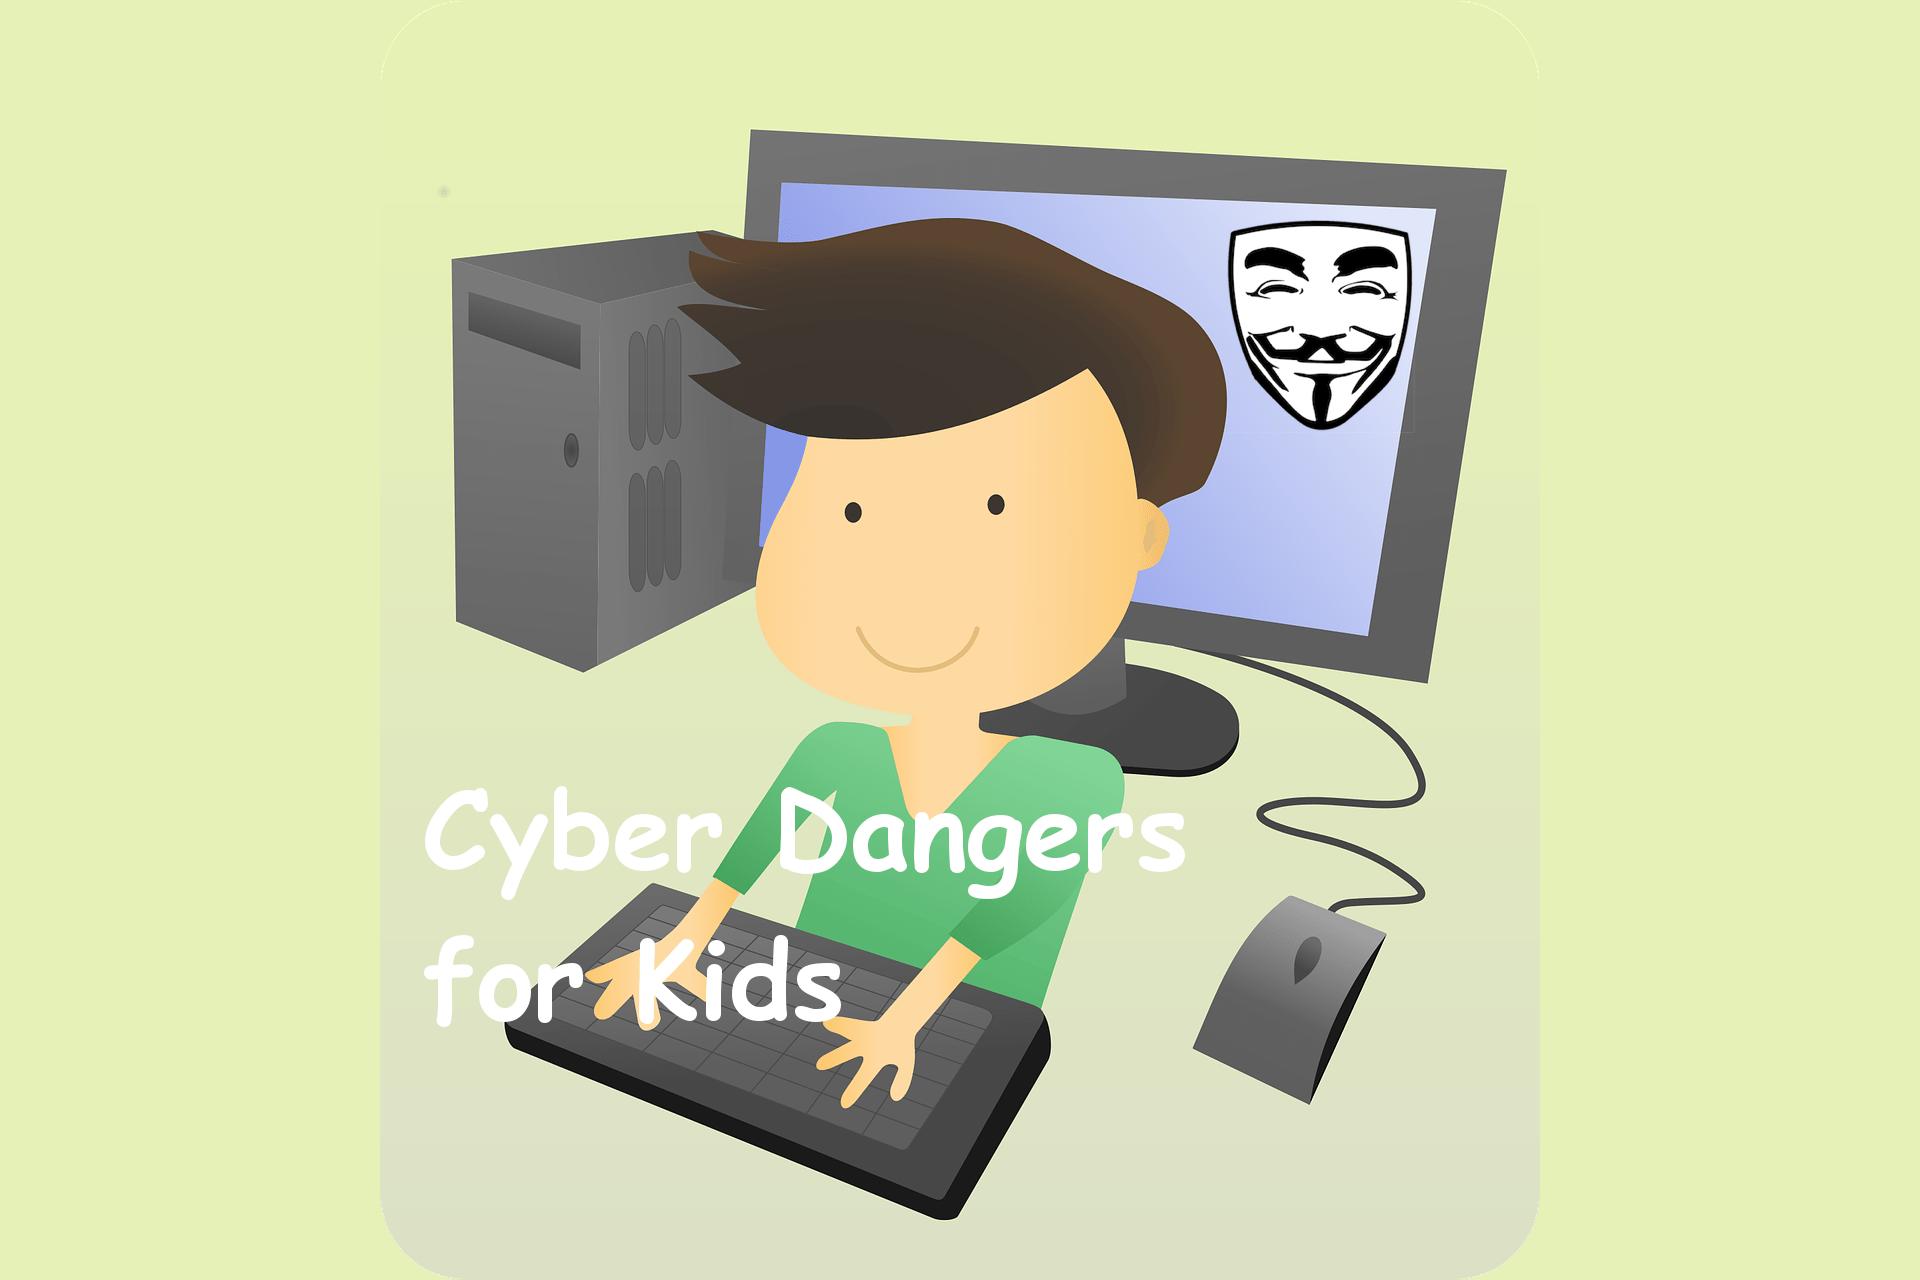 cyber-dangers-for-kids